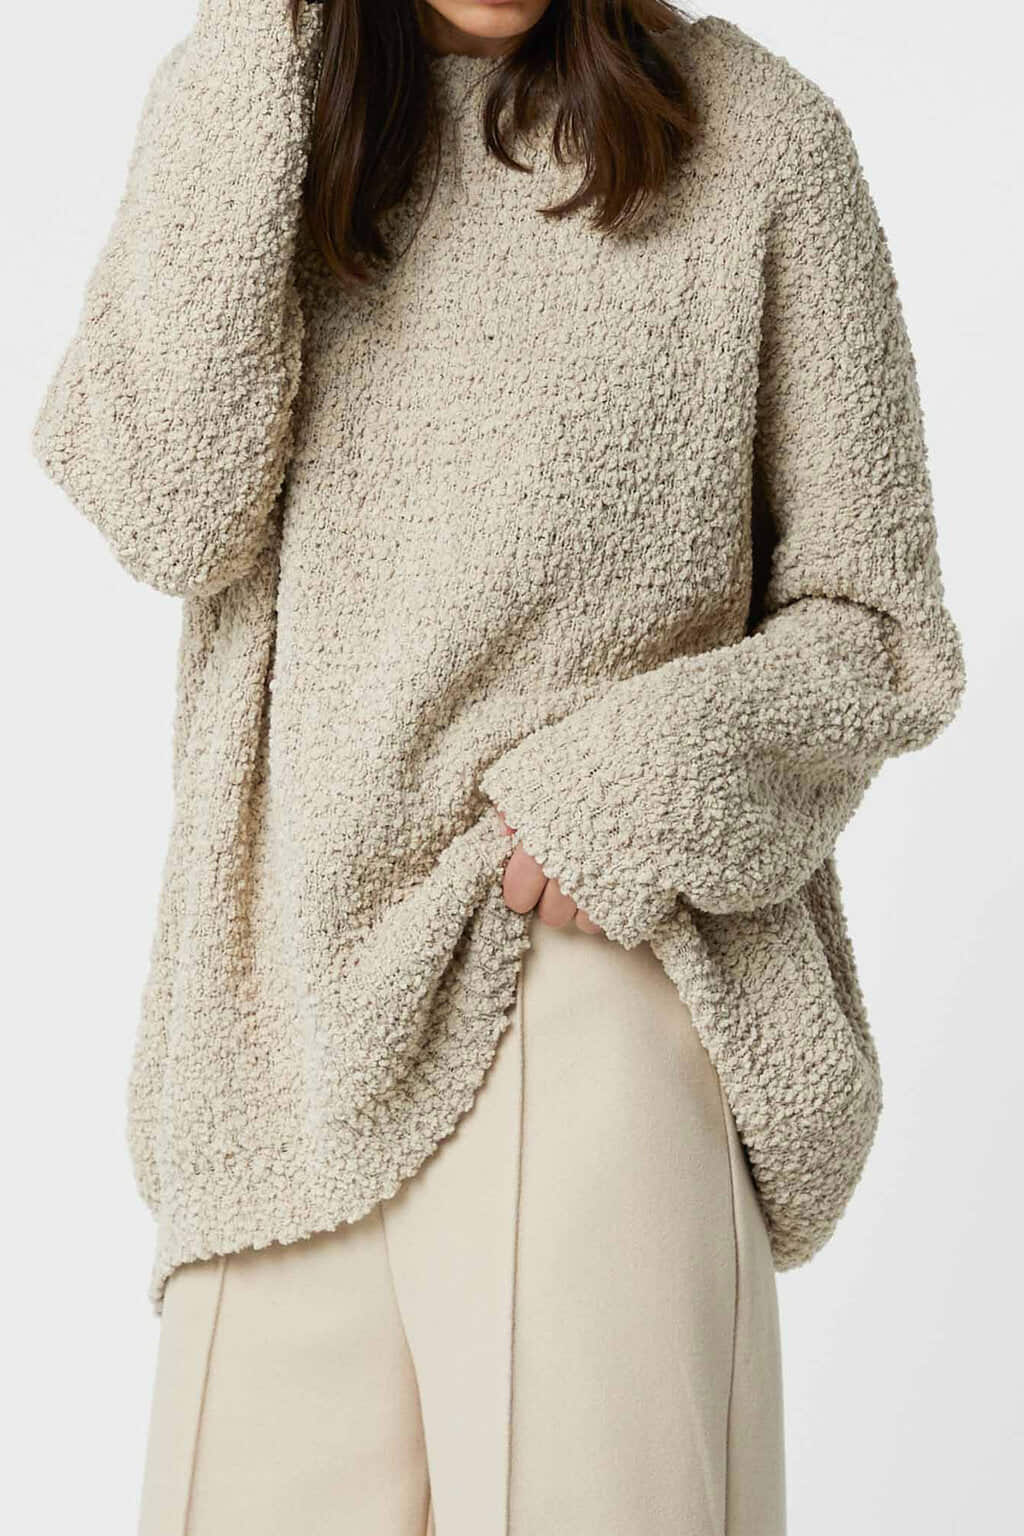 Sweater 3082 Oatmeal 4